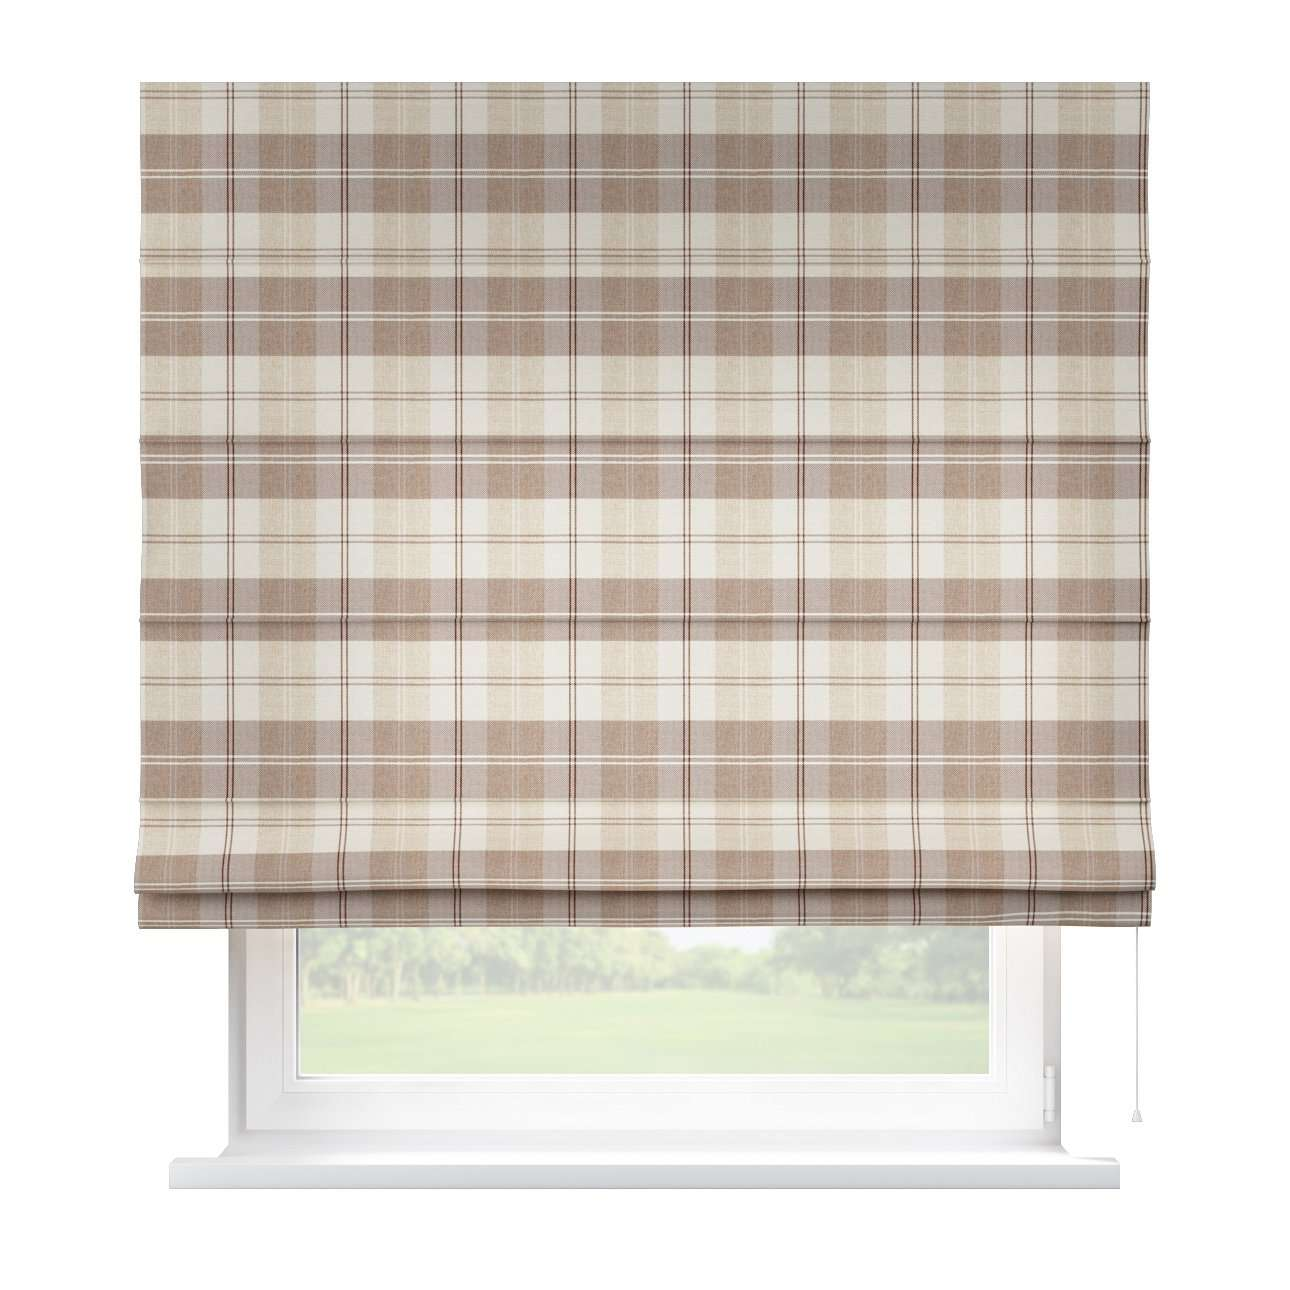 Capri roman blind 80 x 170 cm (31.5 x 67 inch) in collection Edinburgh , fabric: 115-80